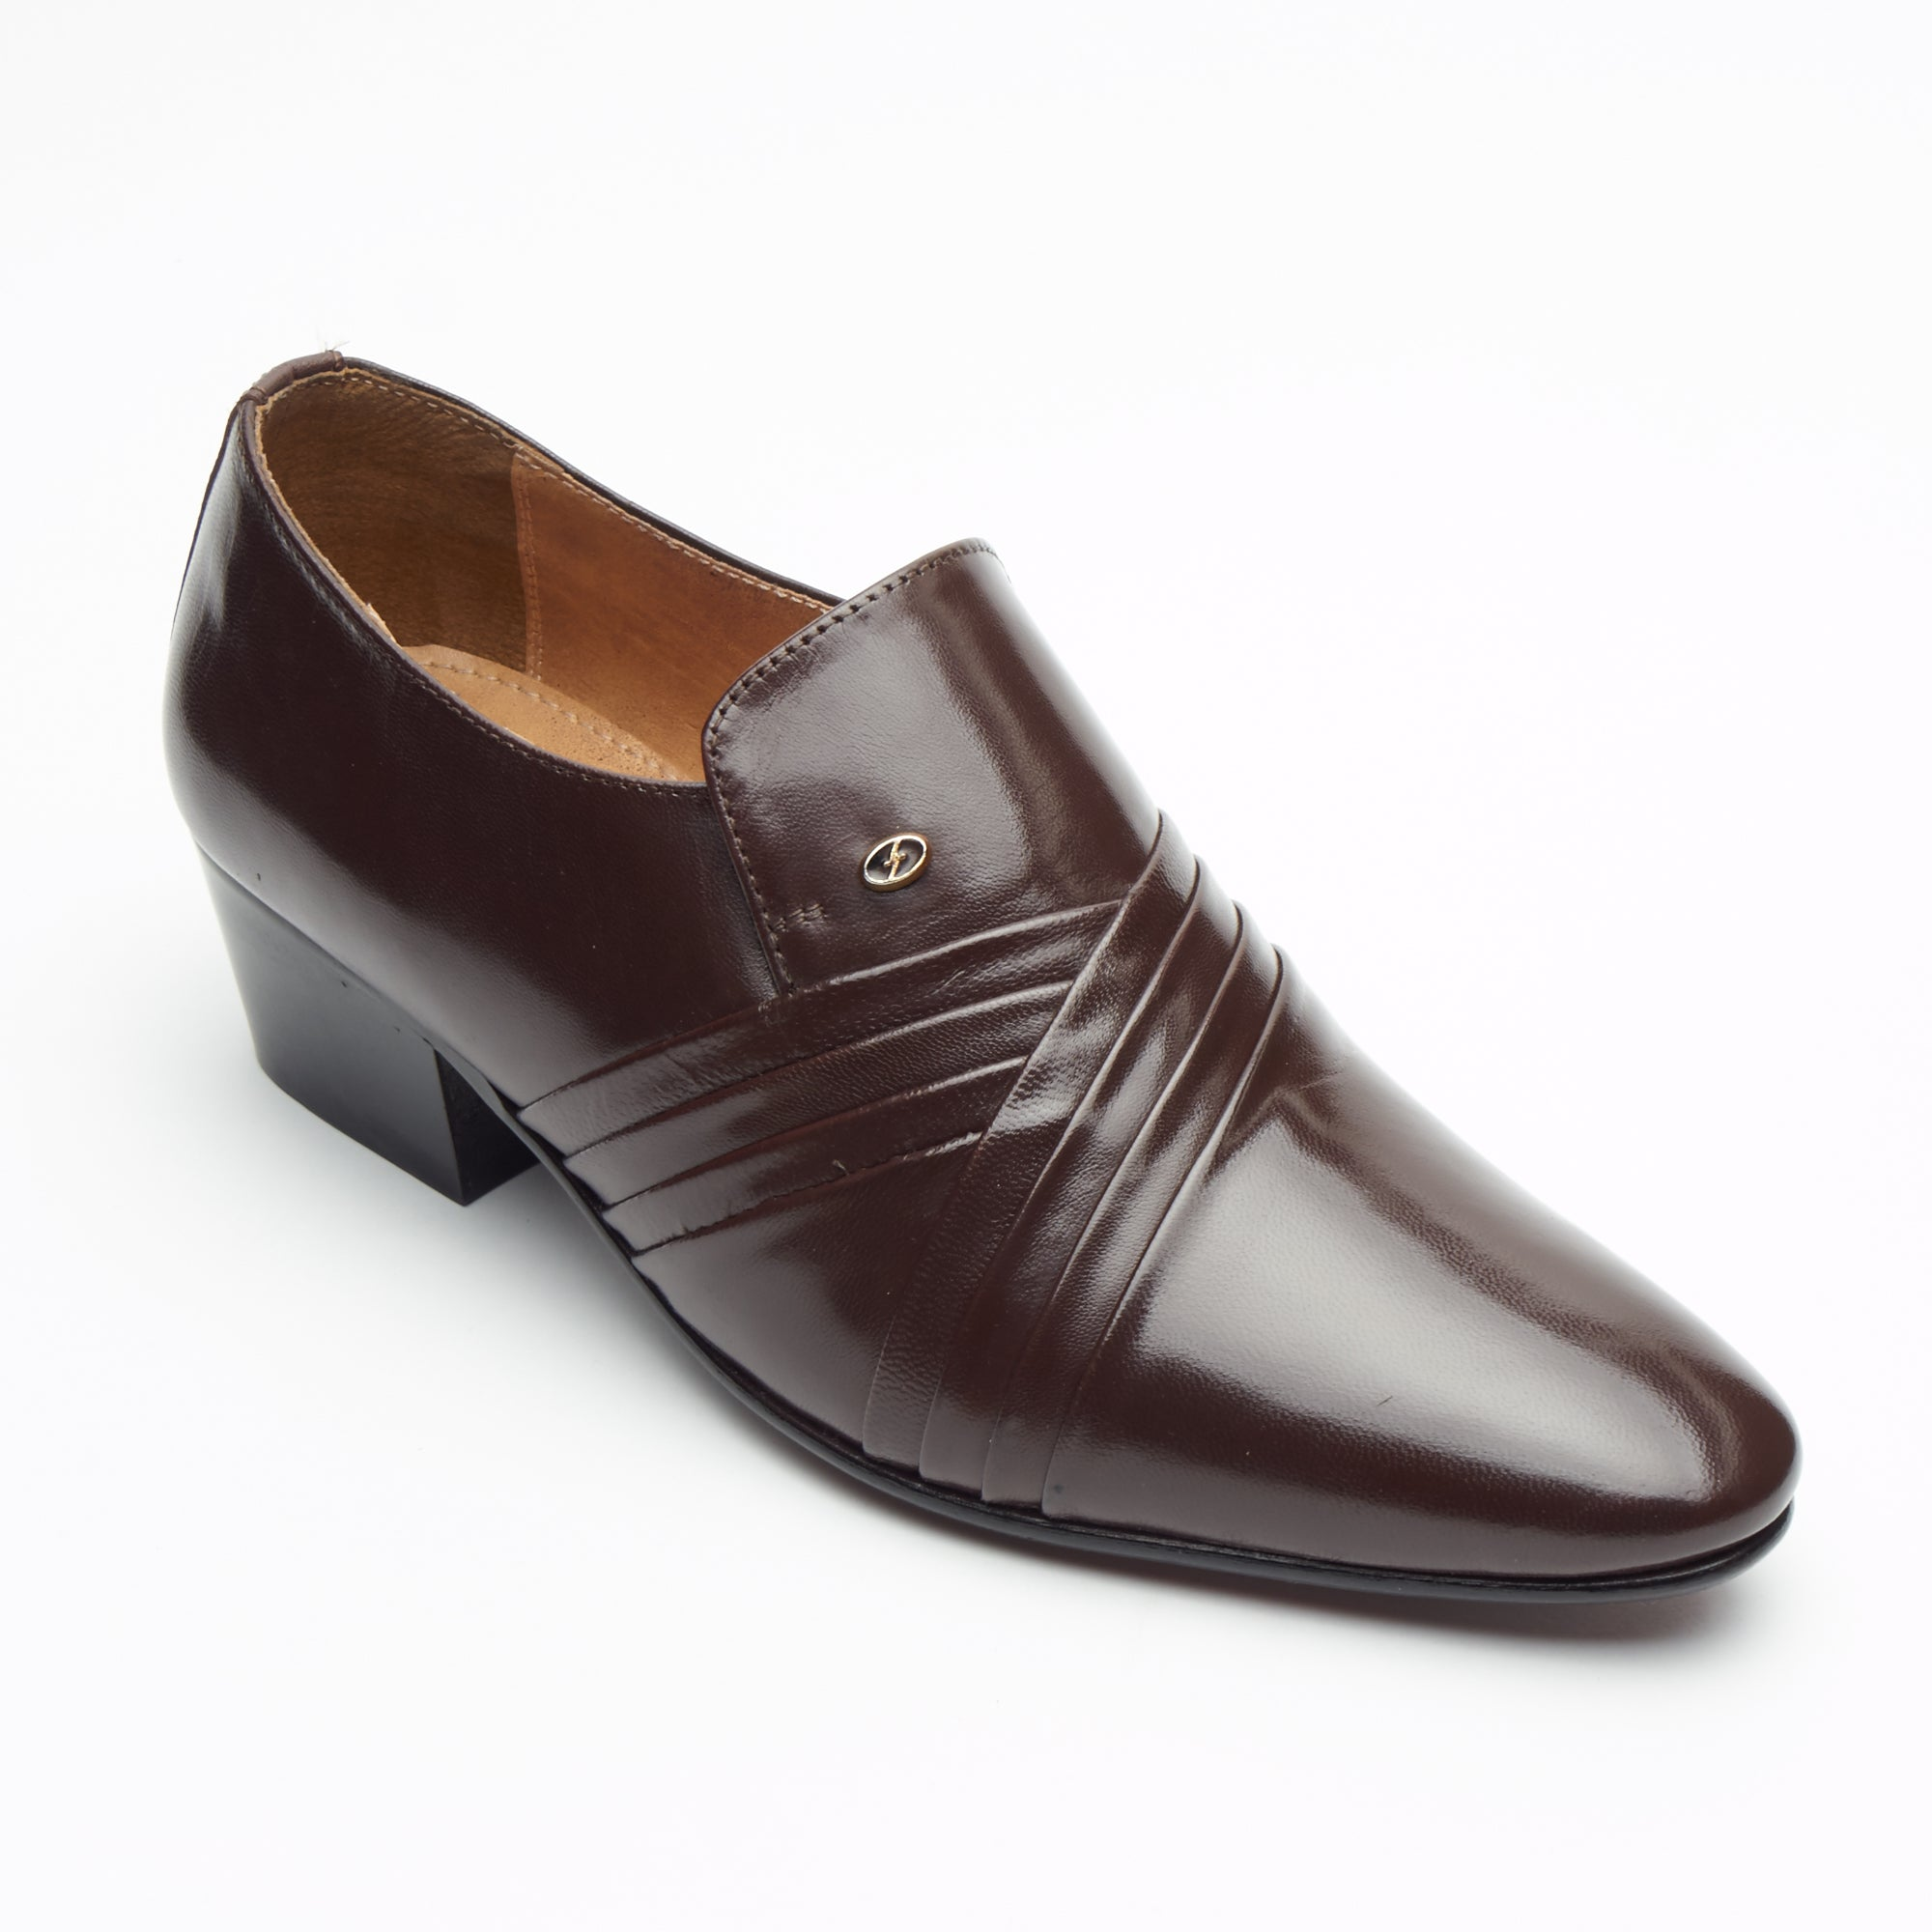 Mens Cuban Heel Leather Shoes - 26544 Brown